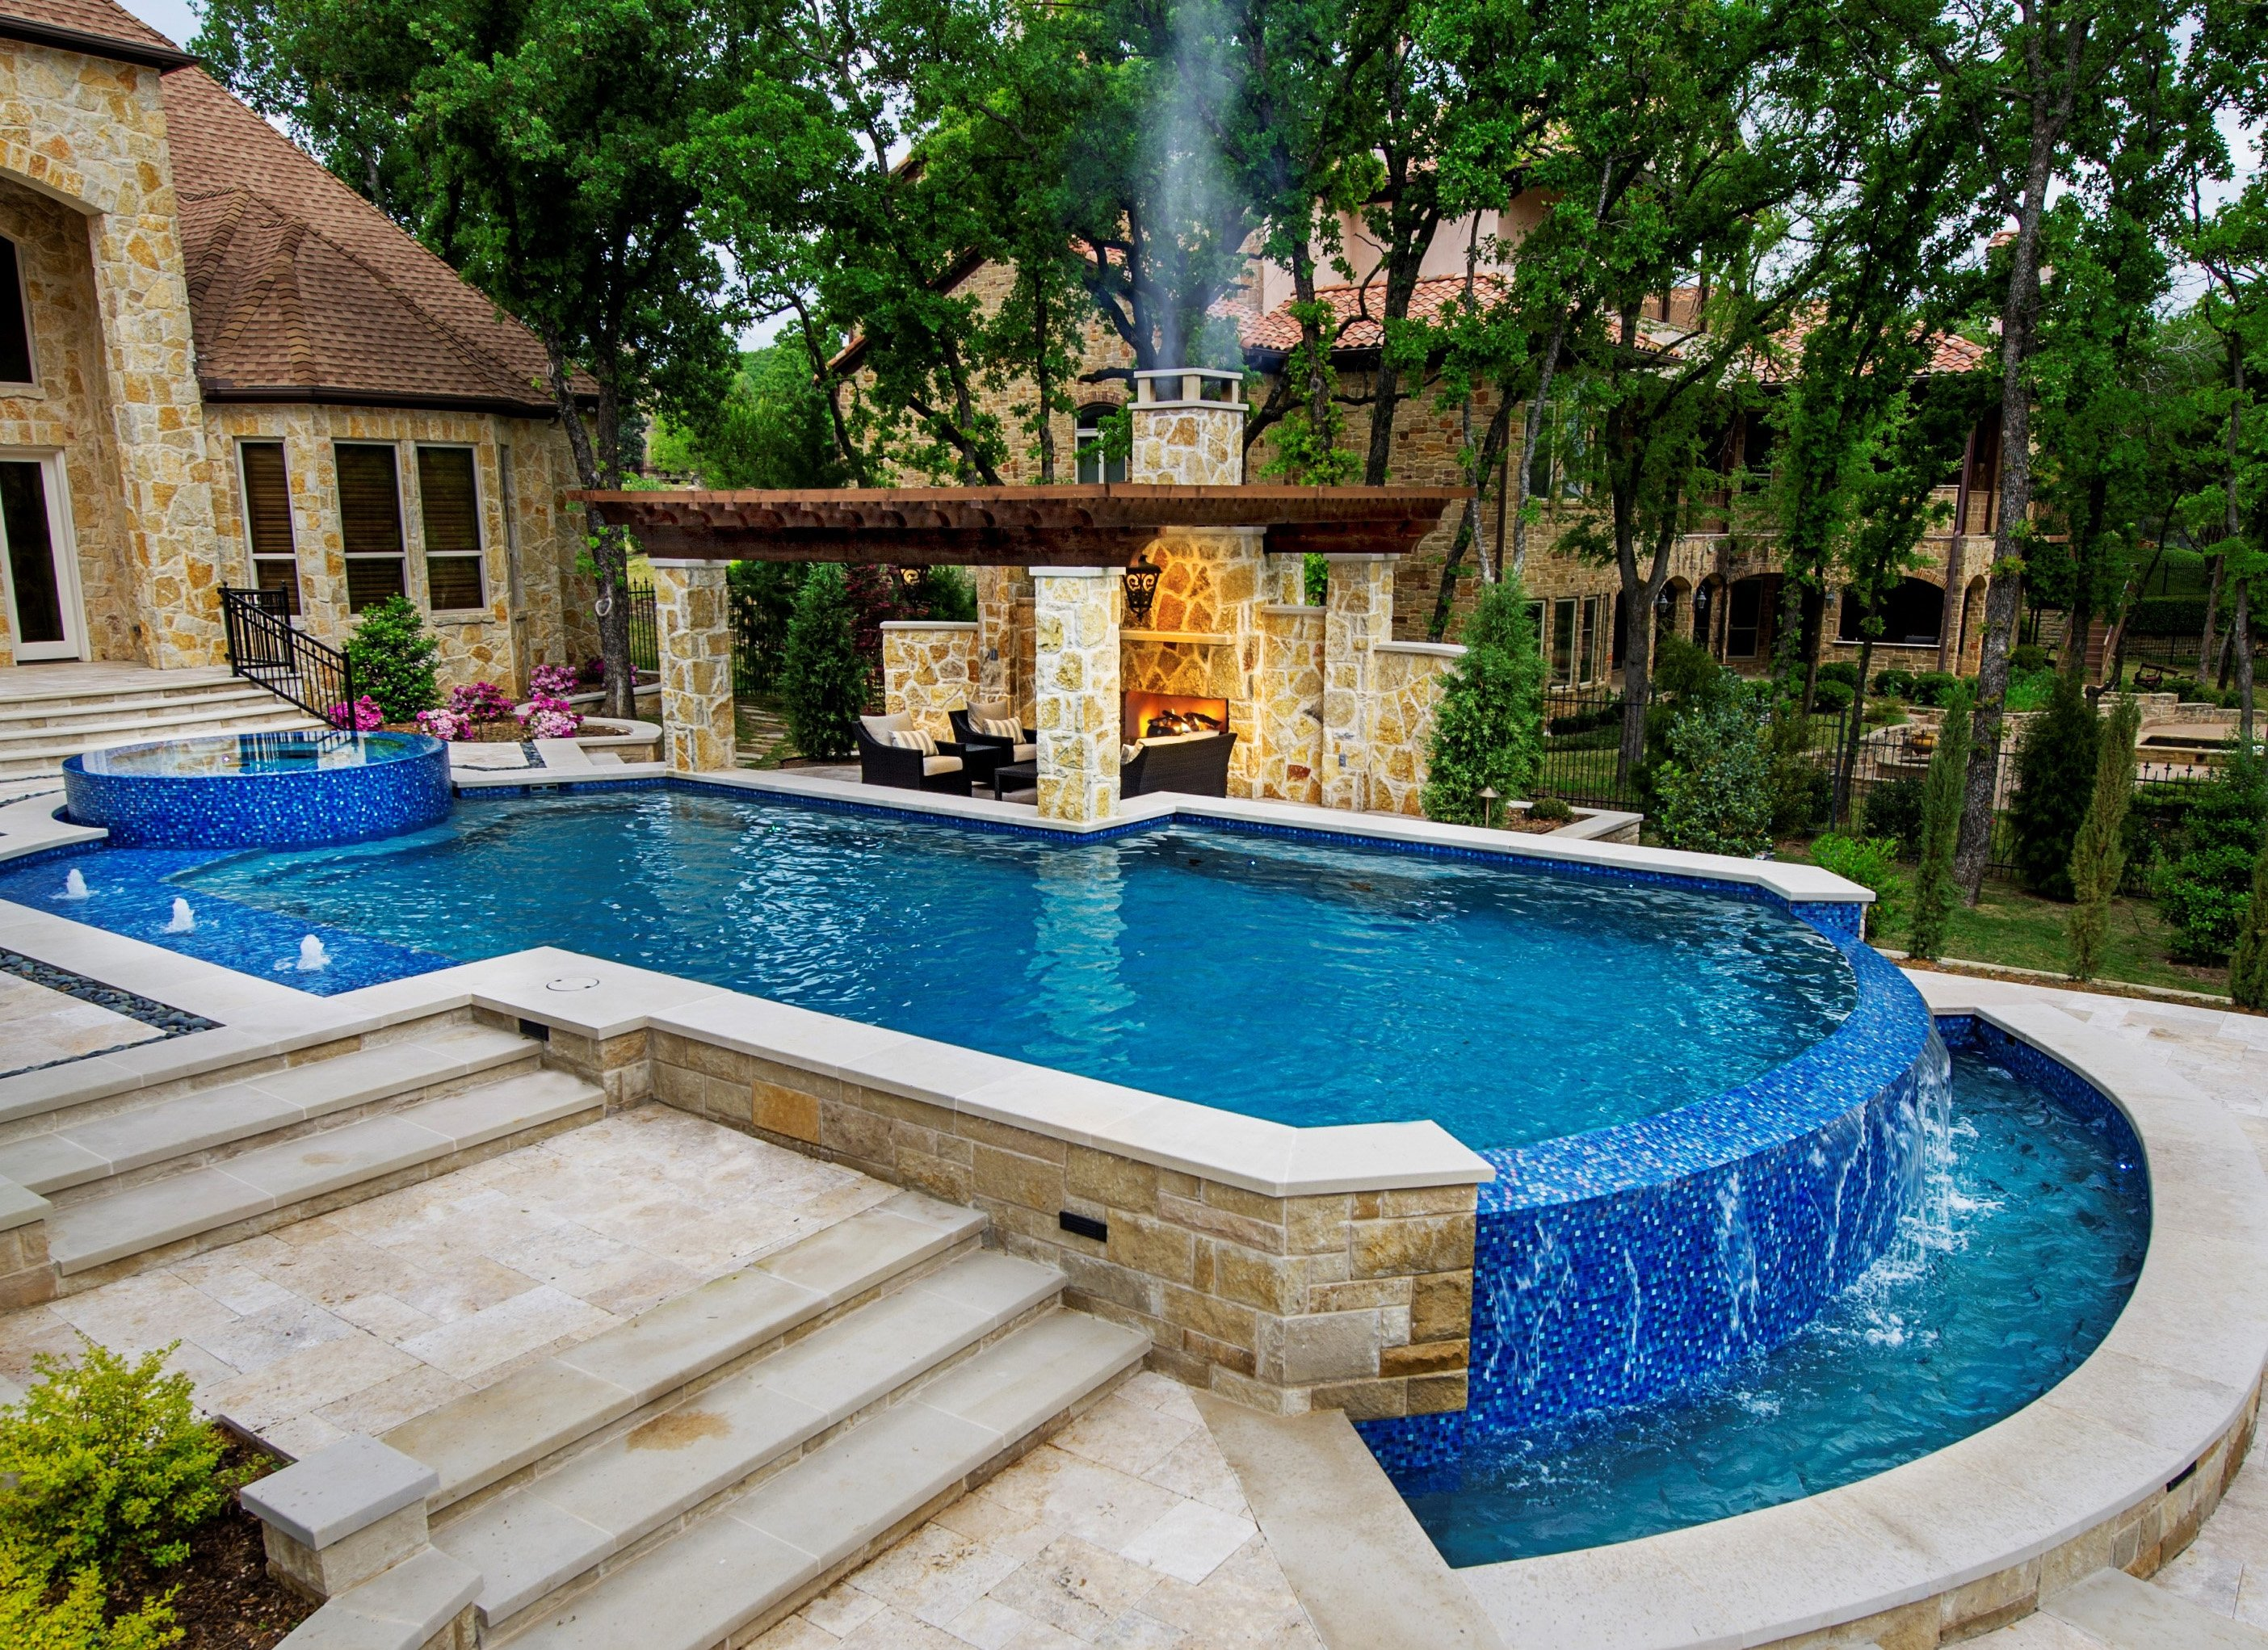 Negative Edge pool, Leuders coping, Travertine decking with Mexican pebble inlay, bubblers, Arbor with rock columns on edge of pool beam. Fireplace & Zodiac Equipment